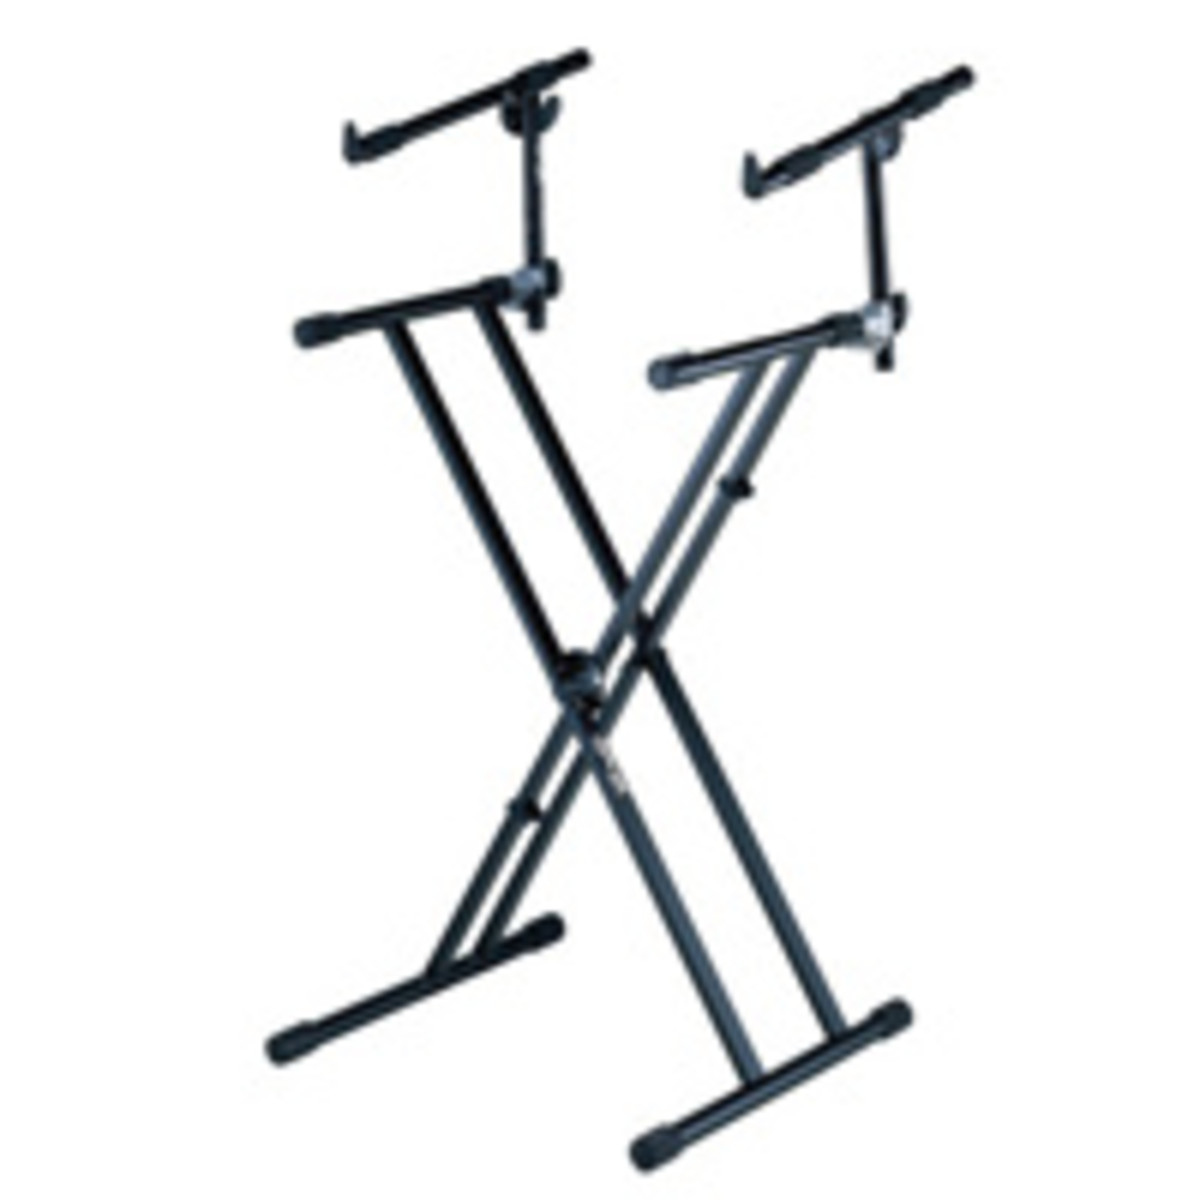 Quiklok Qlx 22 Two Tier Keyboard Stand At Gear4music